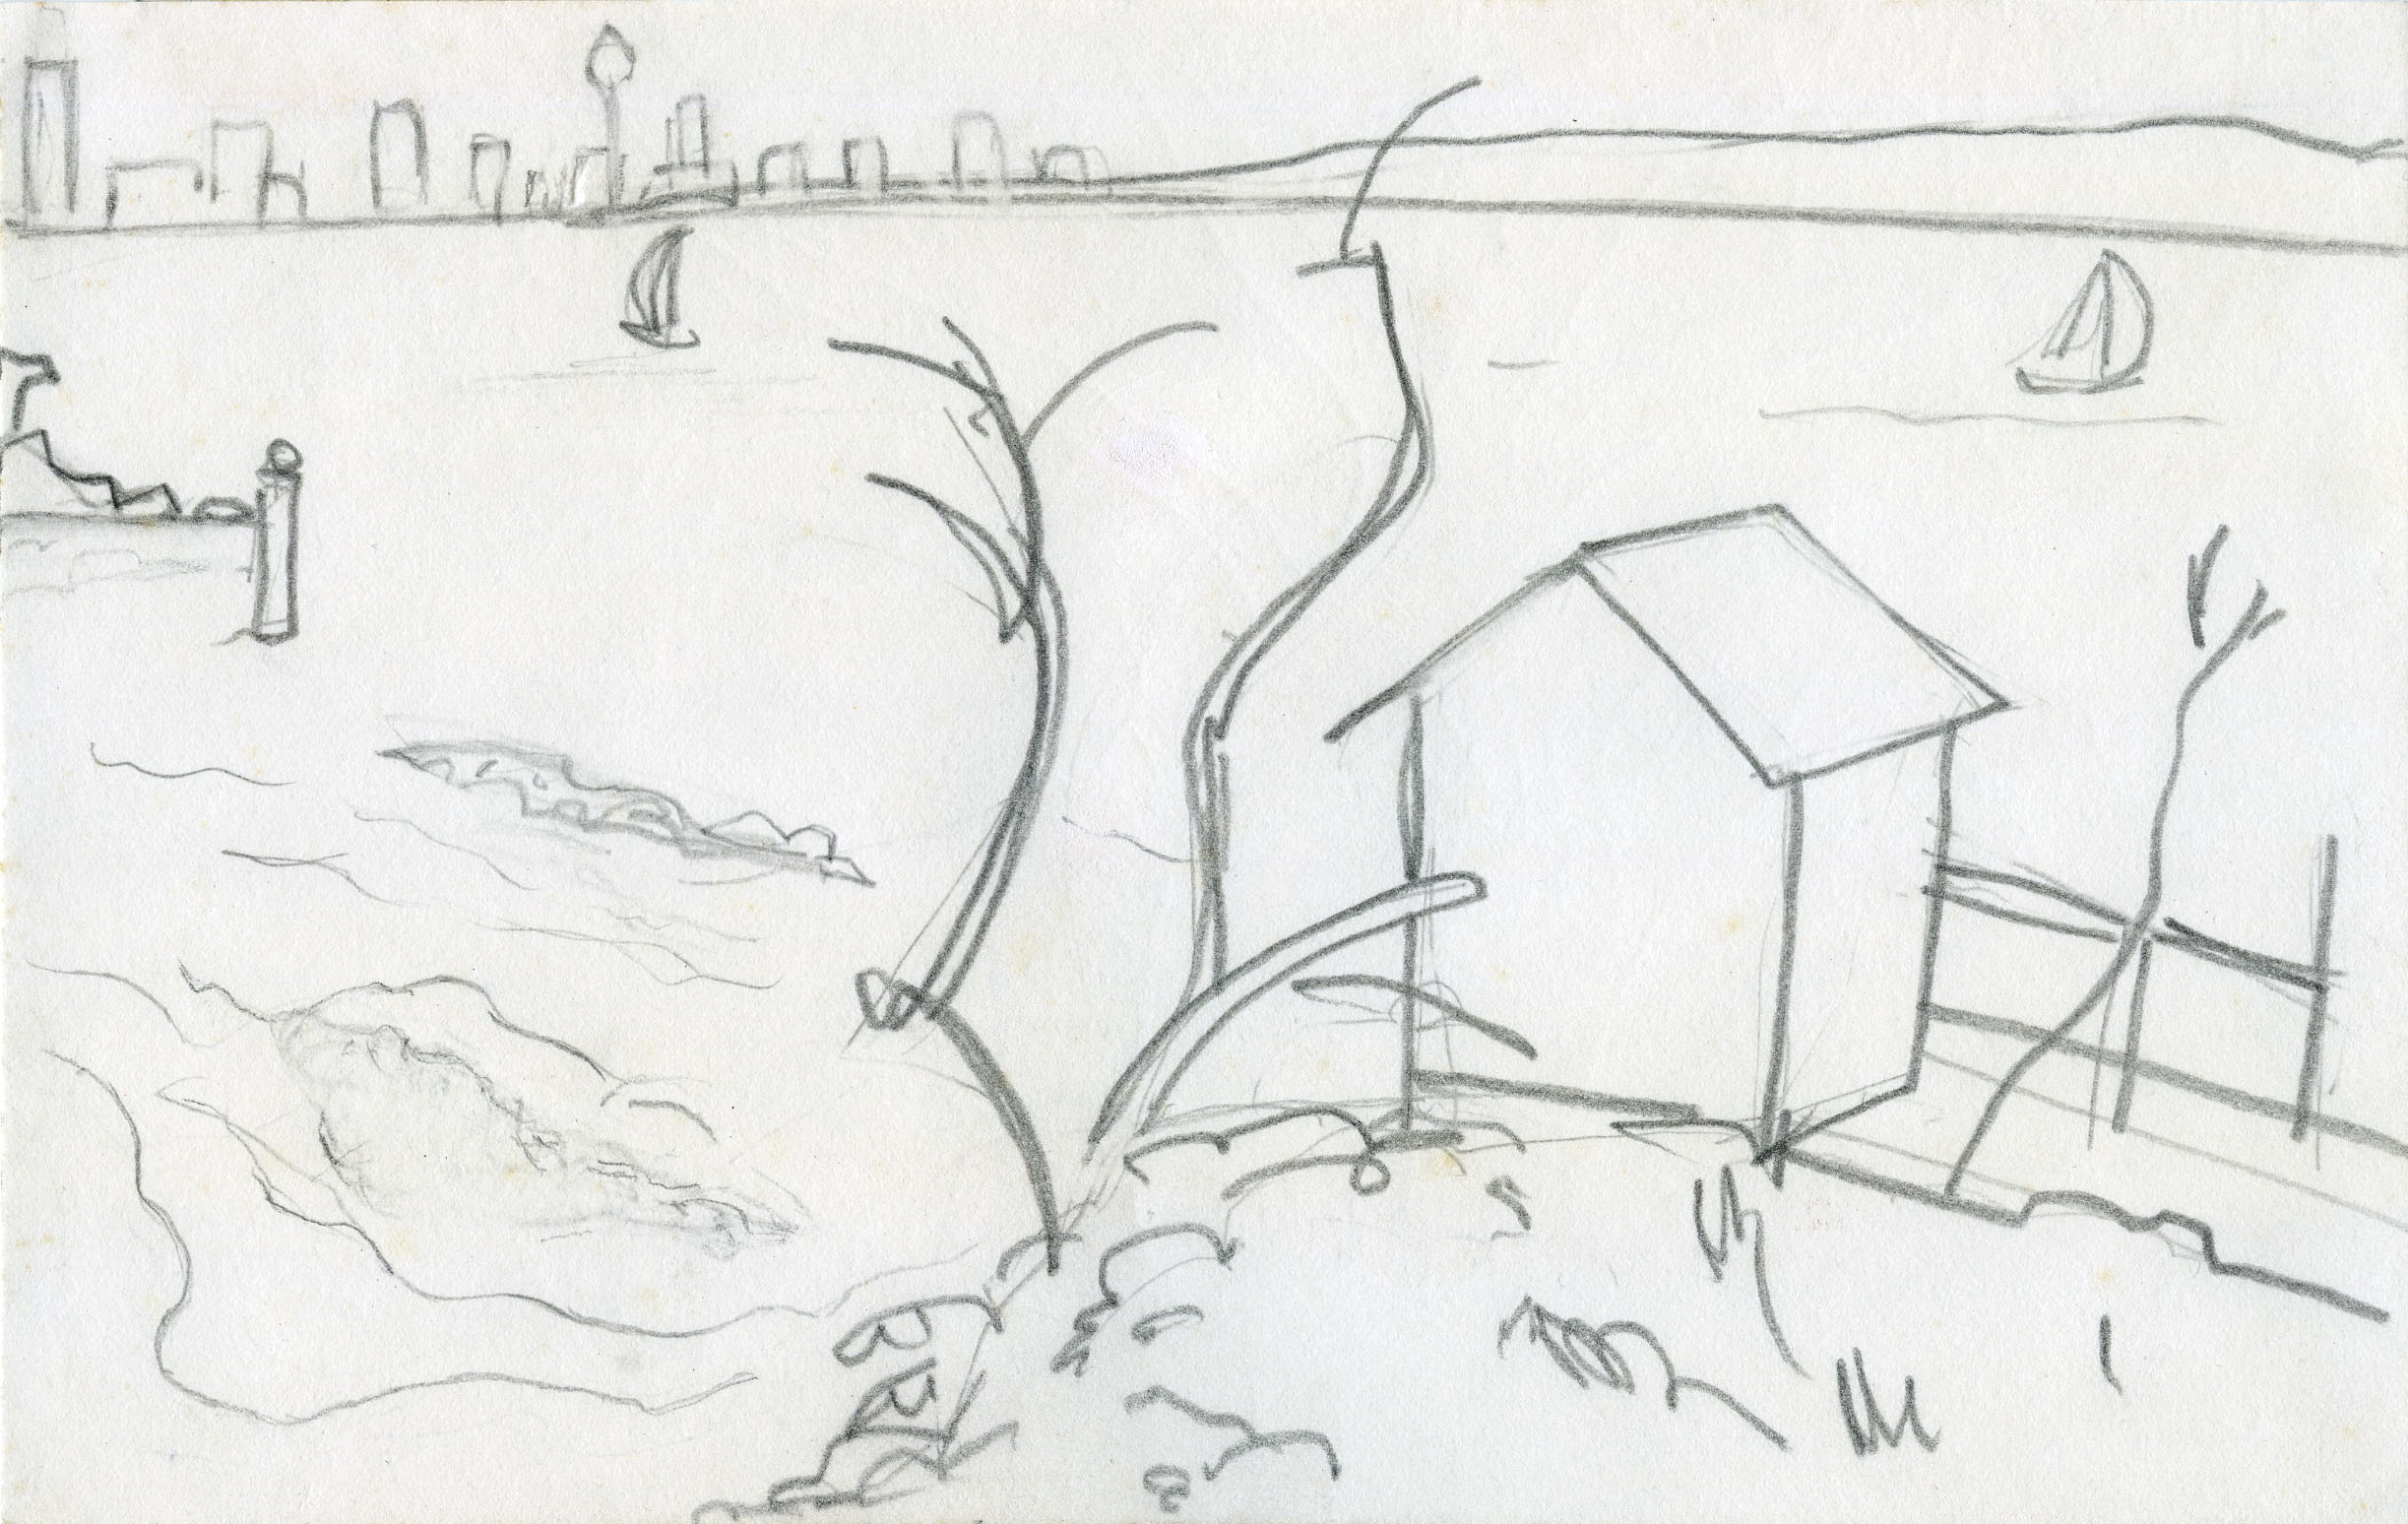 City from Camp Cove, pencil